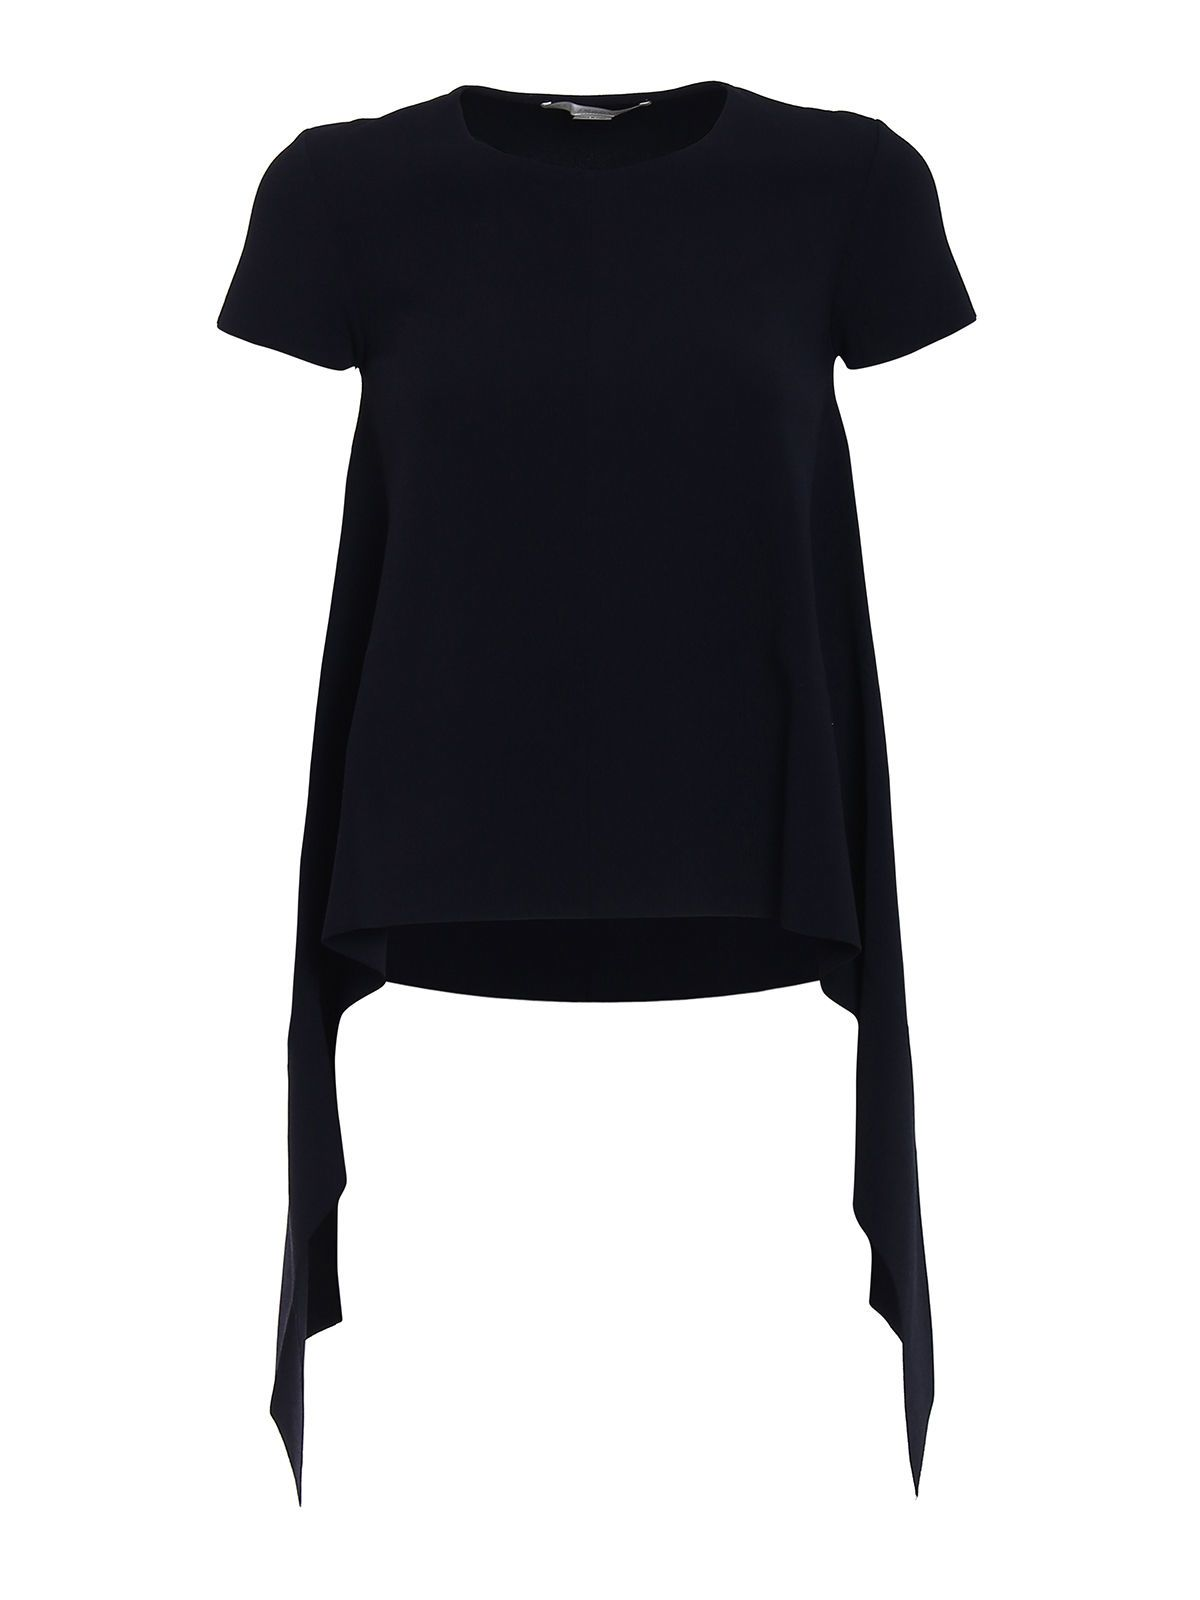 Stella McCartney Short Sleeved Top